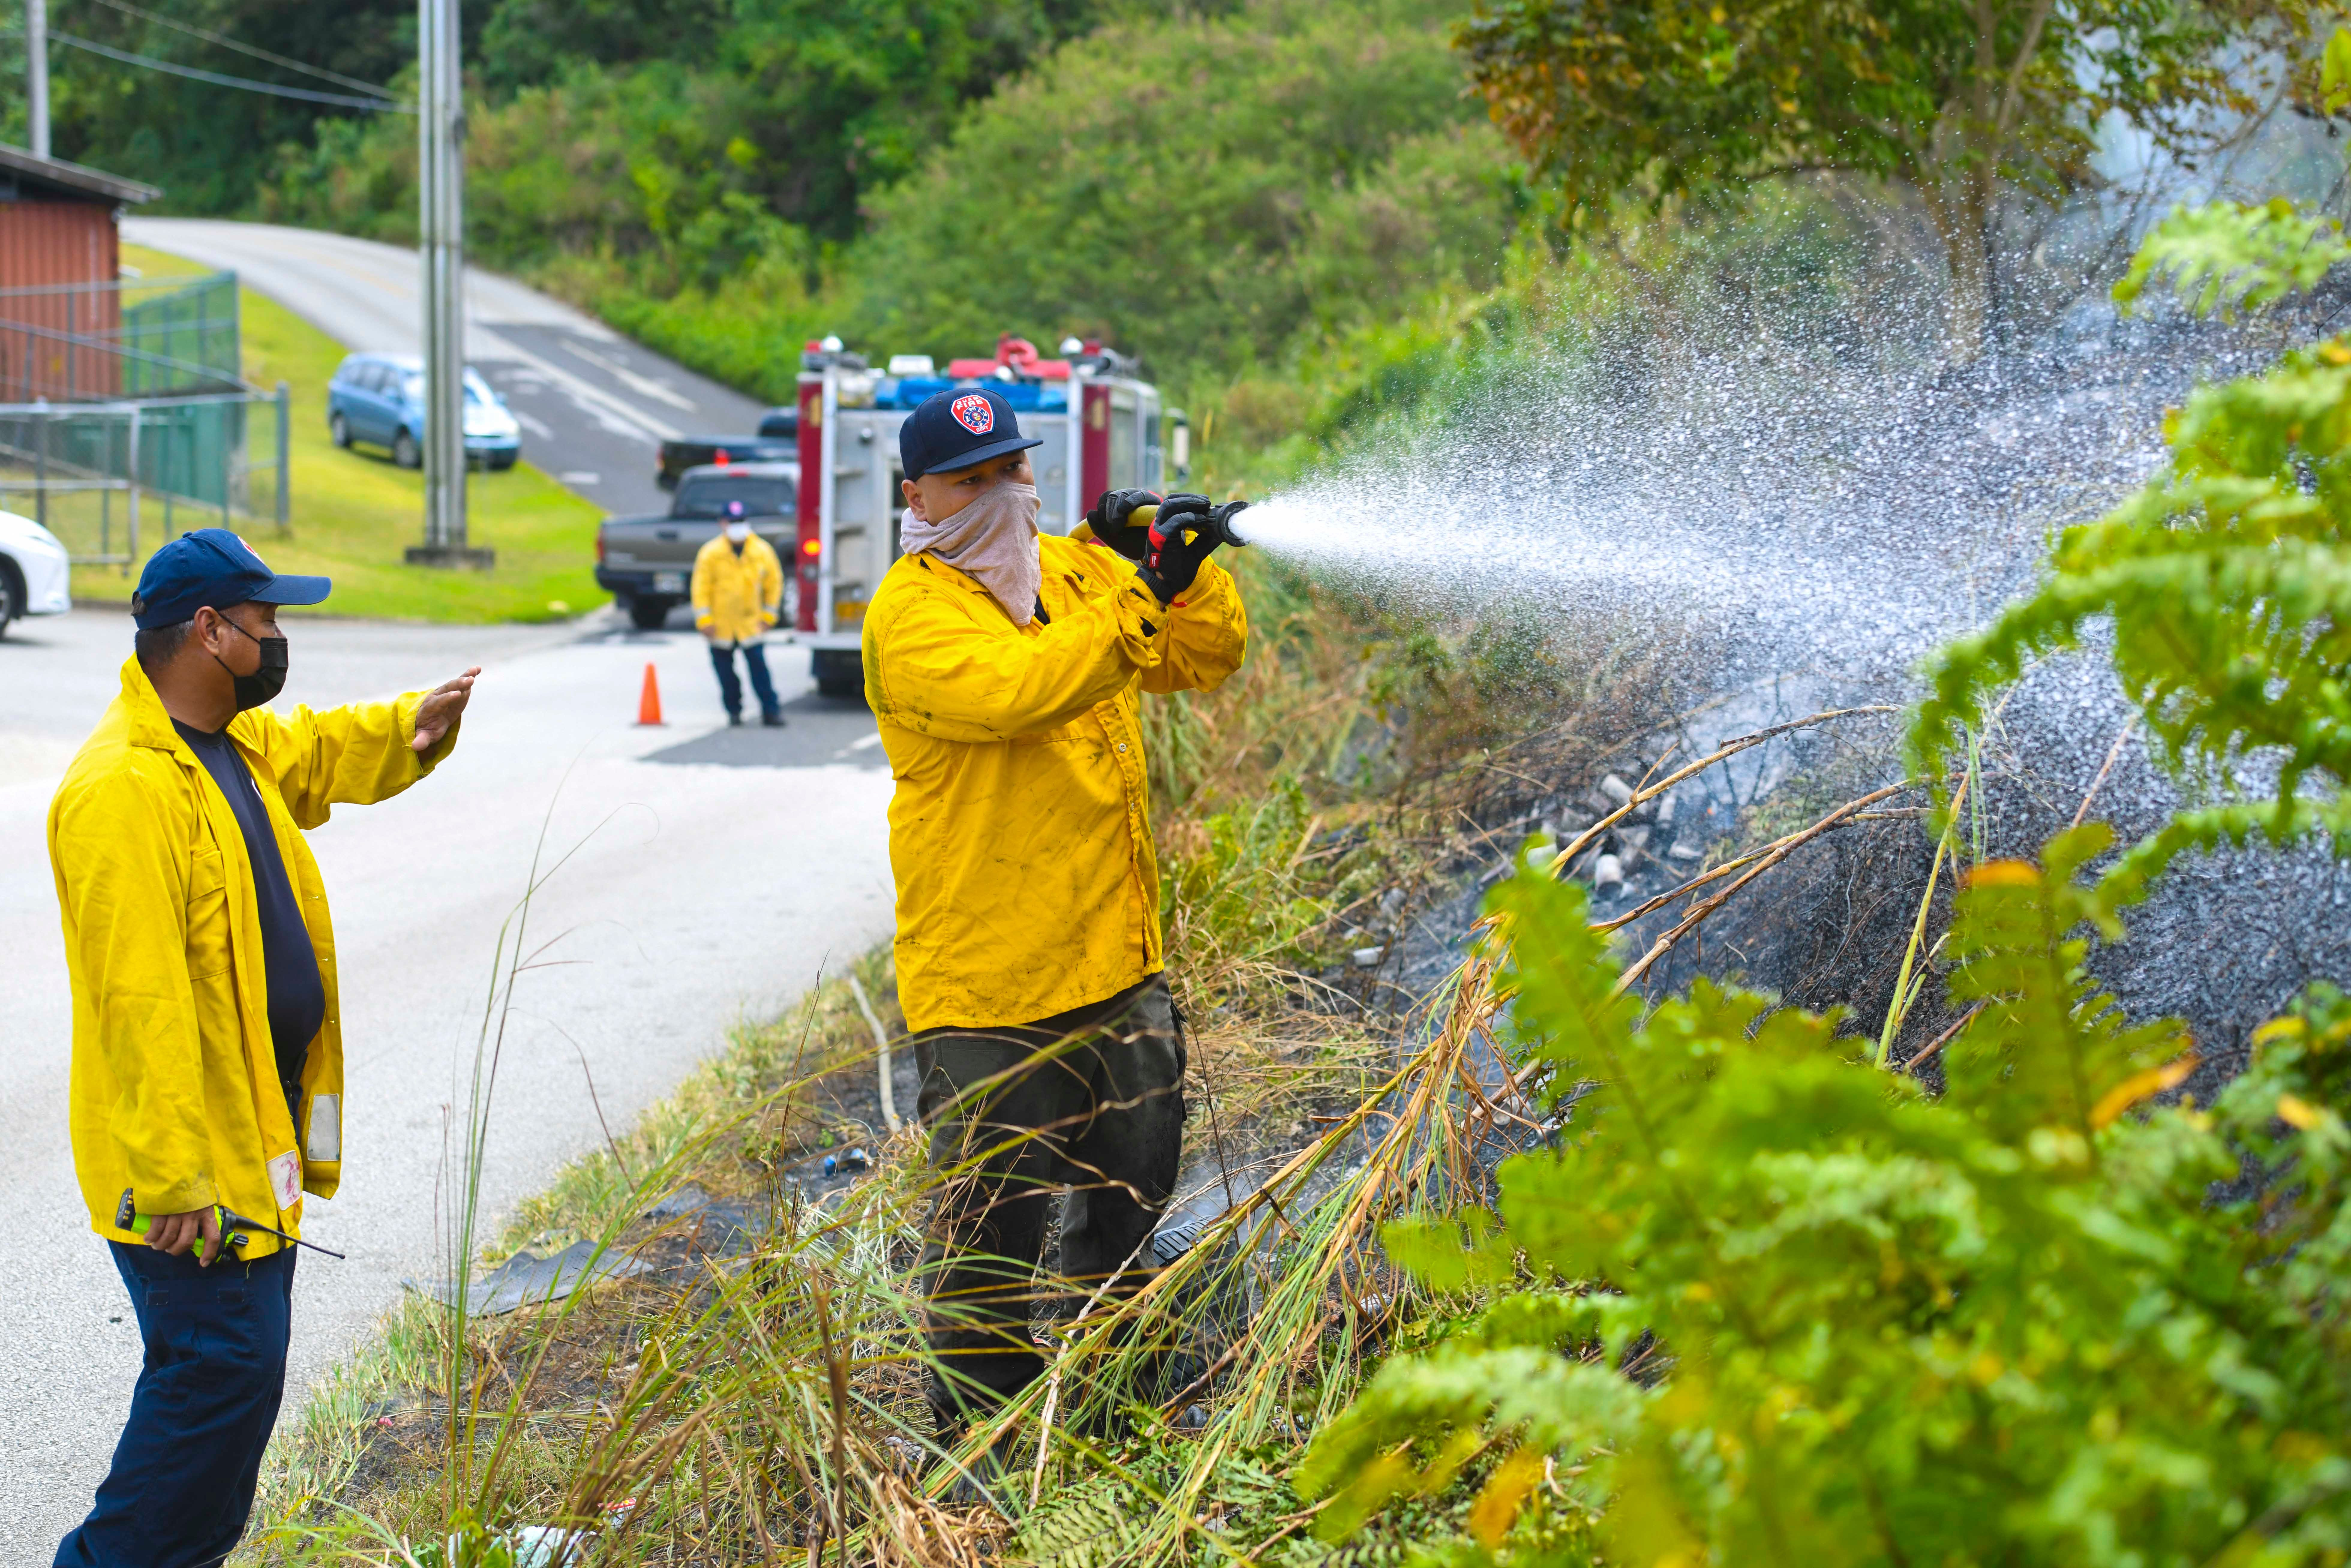 Firefighter Vince Toves, center, extinguishes hot spots at a grass fire along Mendioka Street in Dededo in this Feb. 26 file photo. The National Weather Service issued a fire weather watch for Guam, especially for central and southern areas.